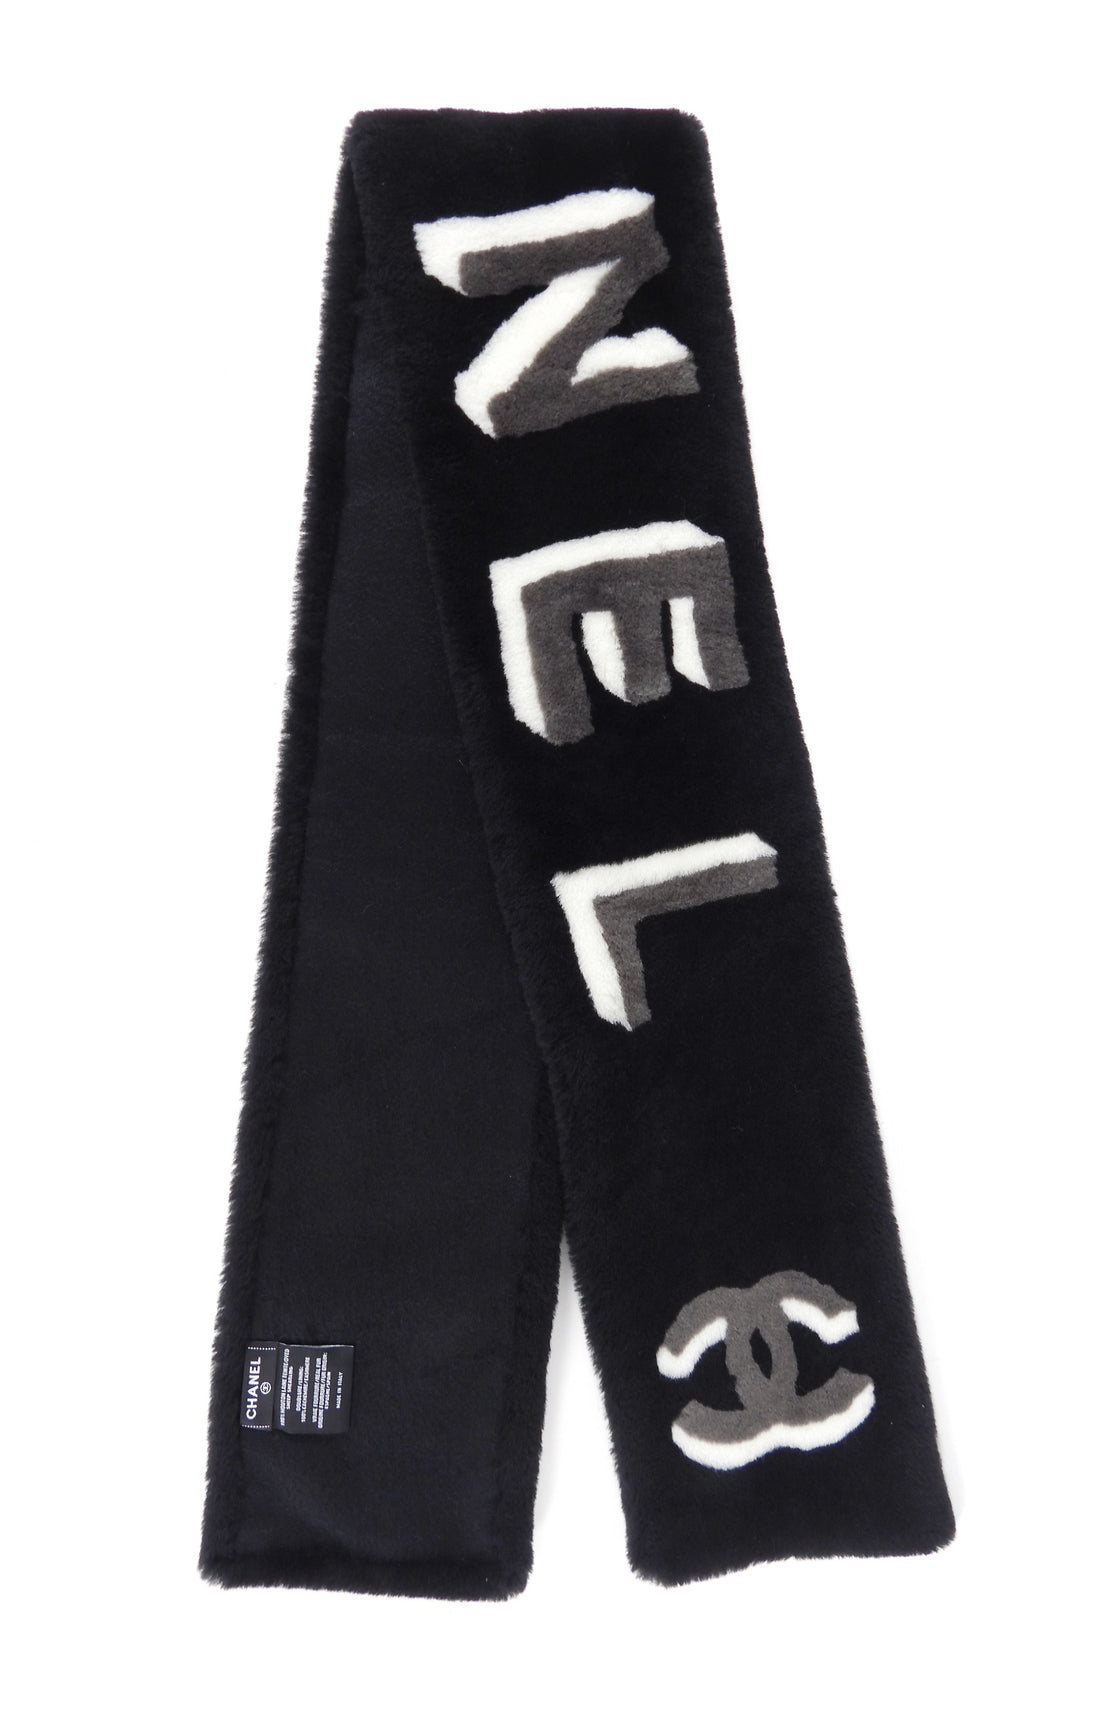 Chanel Fall 2020 Black and Grey Logo Shearling Scarf